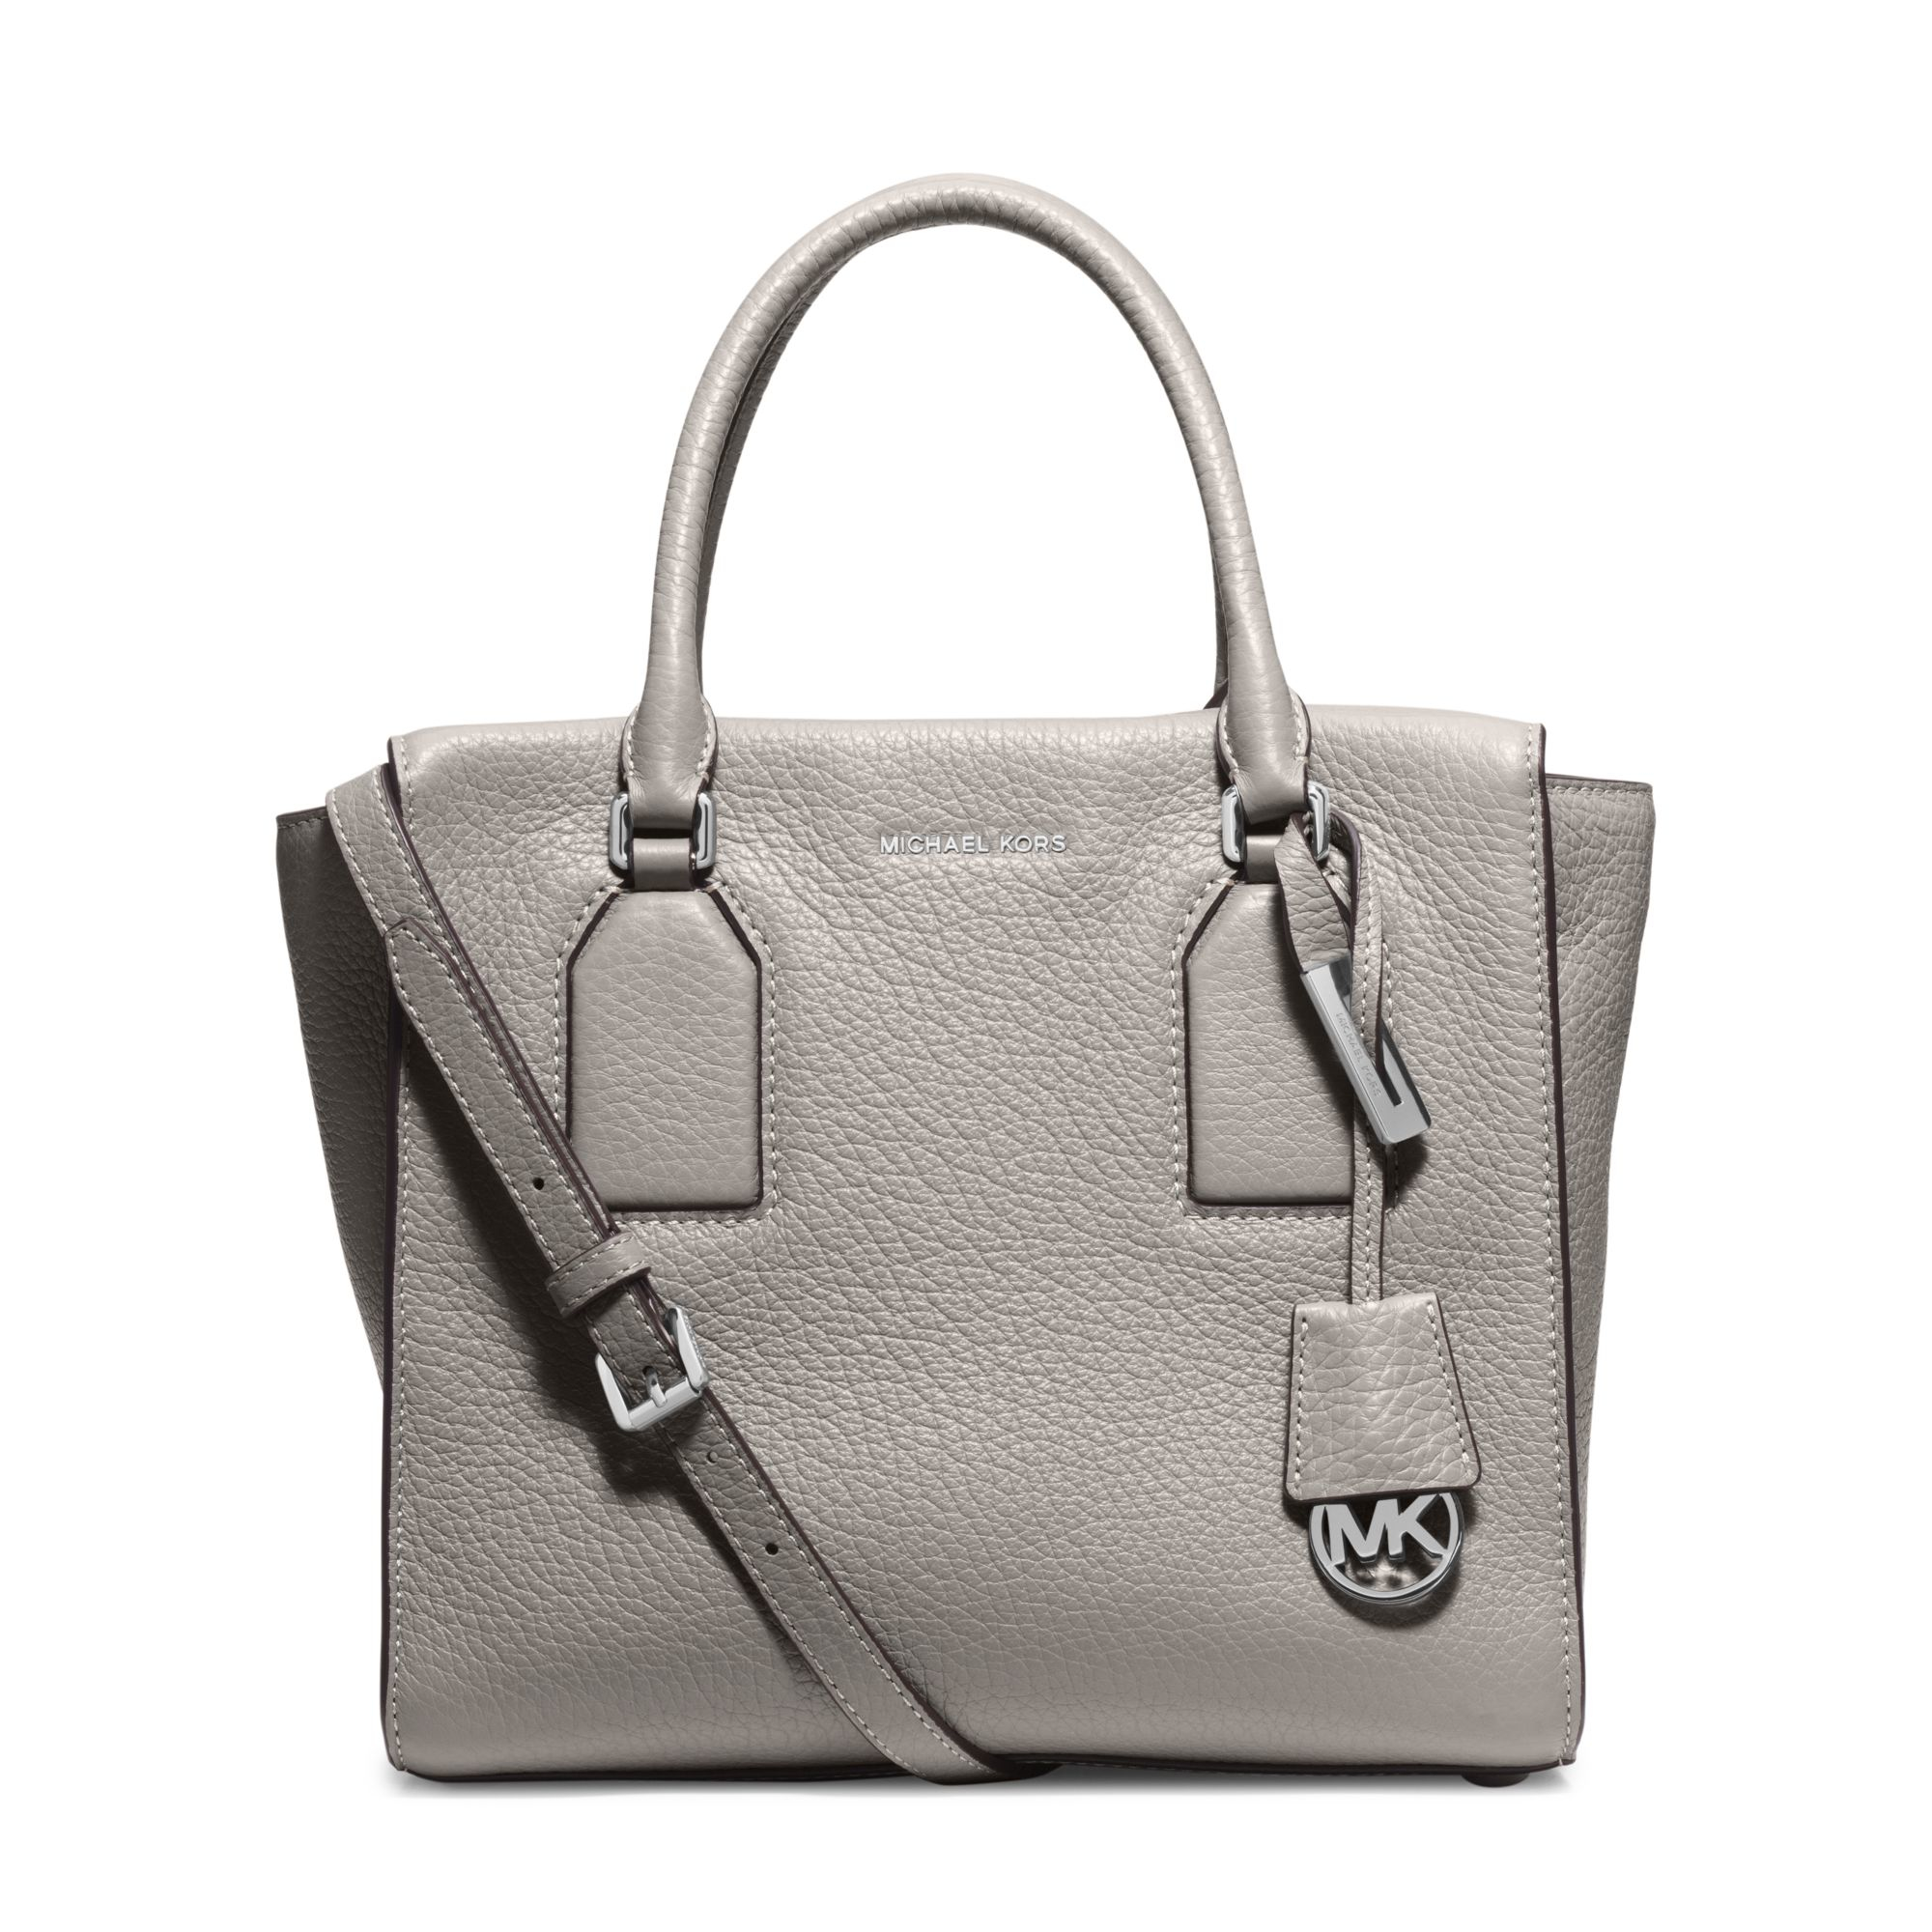 3eac6b8f3666 Lyst - Michael Kors Selby Large Leather Satchel in Gray